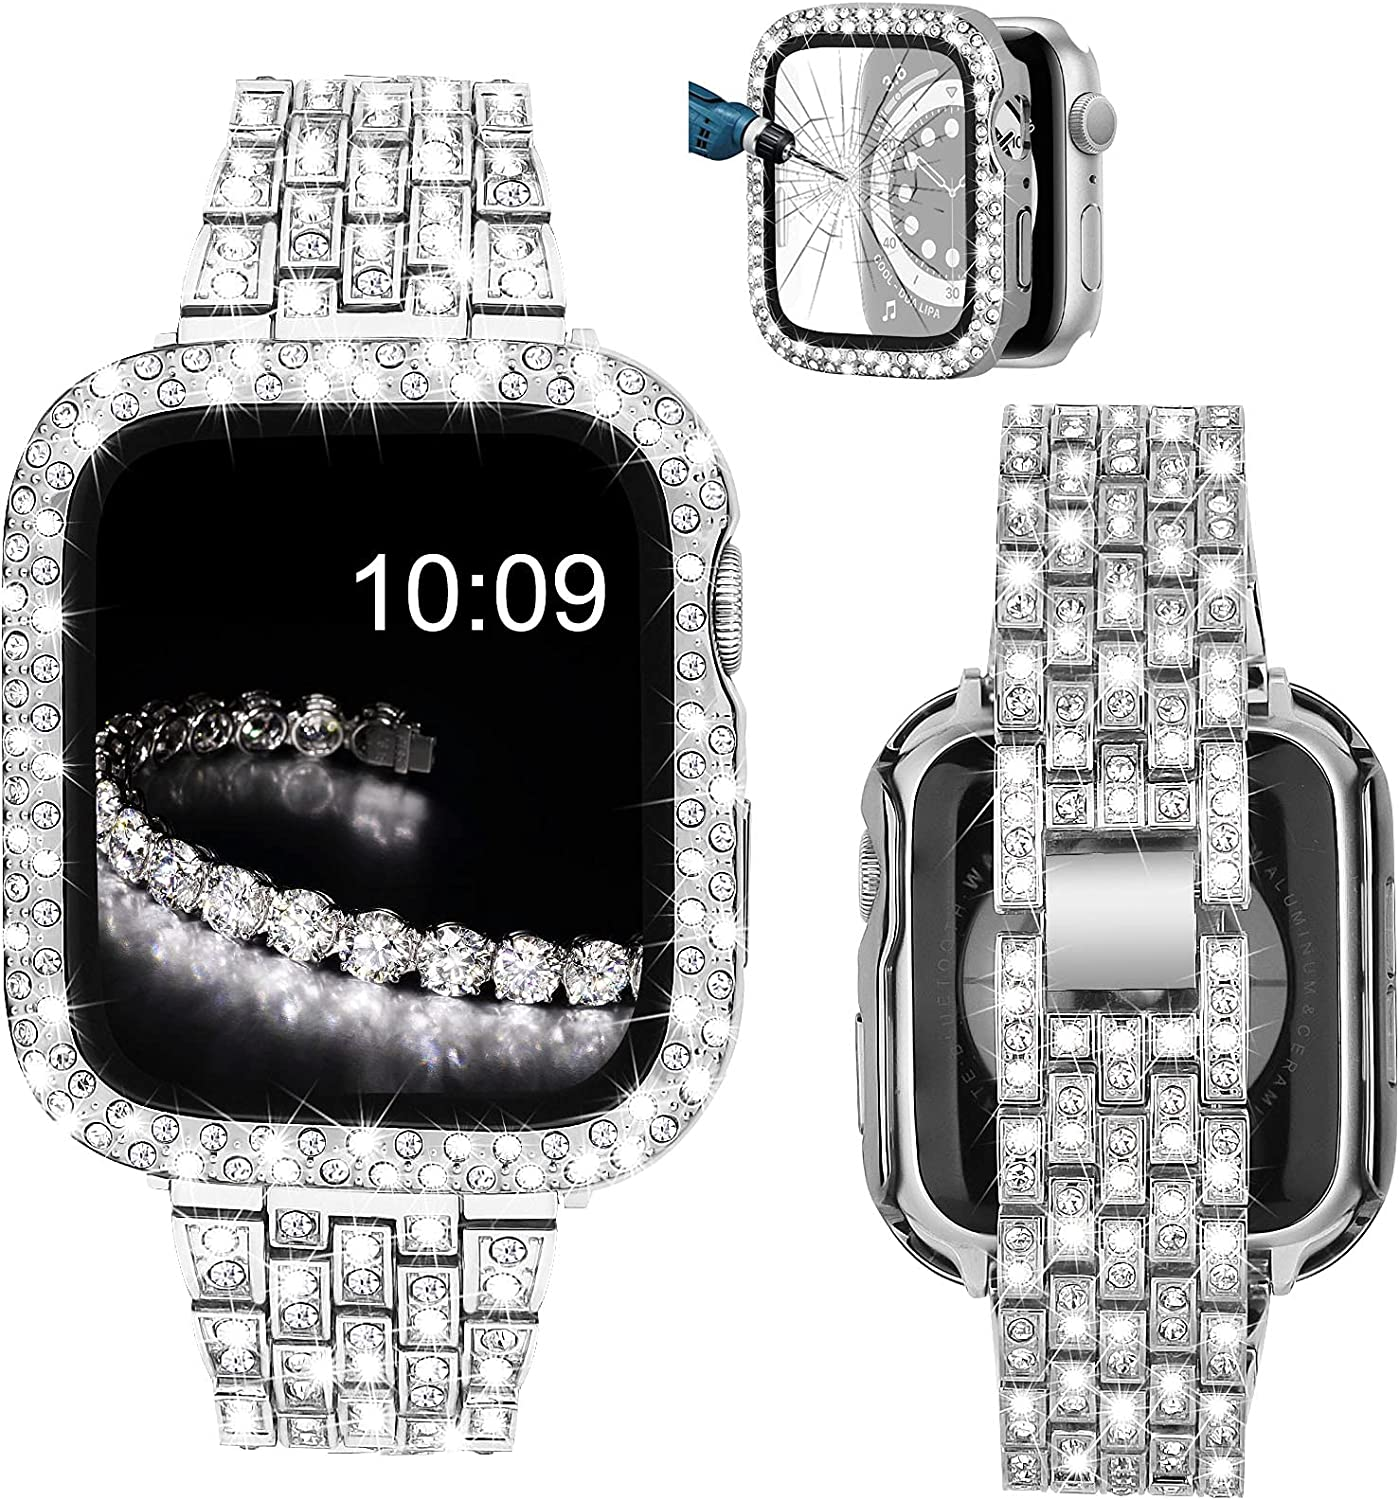 V-MORO Bracelet Compatible with Series 6 Apple Watch Band 40mm with Screen Protector Case, Jewelry Bling Diamond Metal Strap and Full Cover Protective Case for iWatch Series SE/5/4 40mm Women Silver